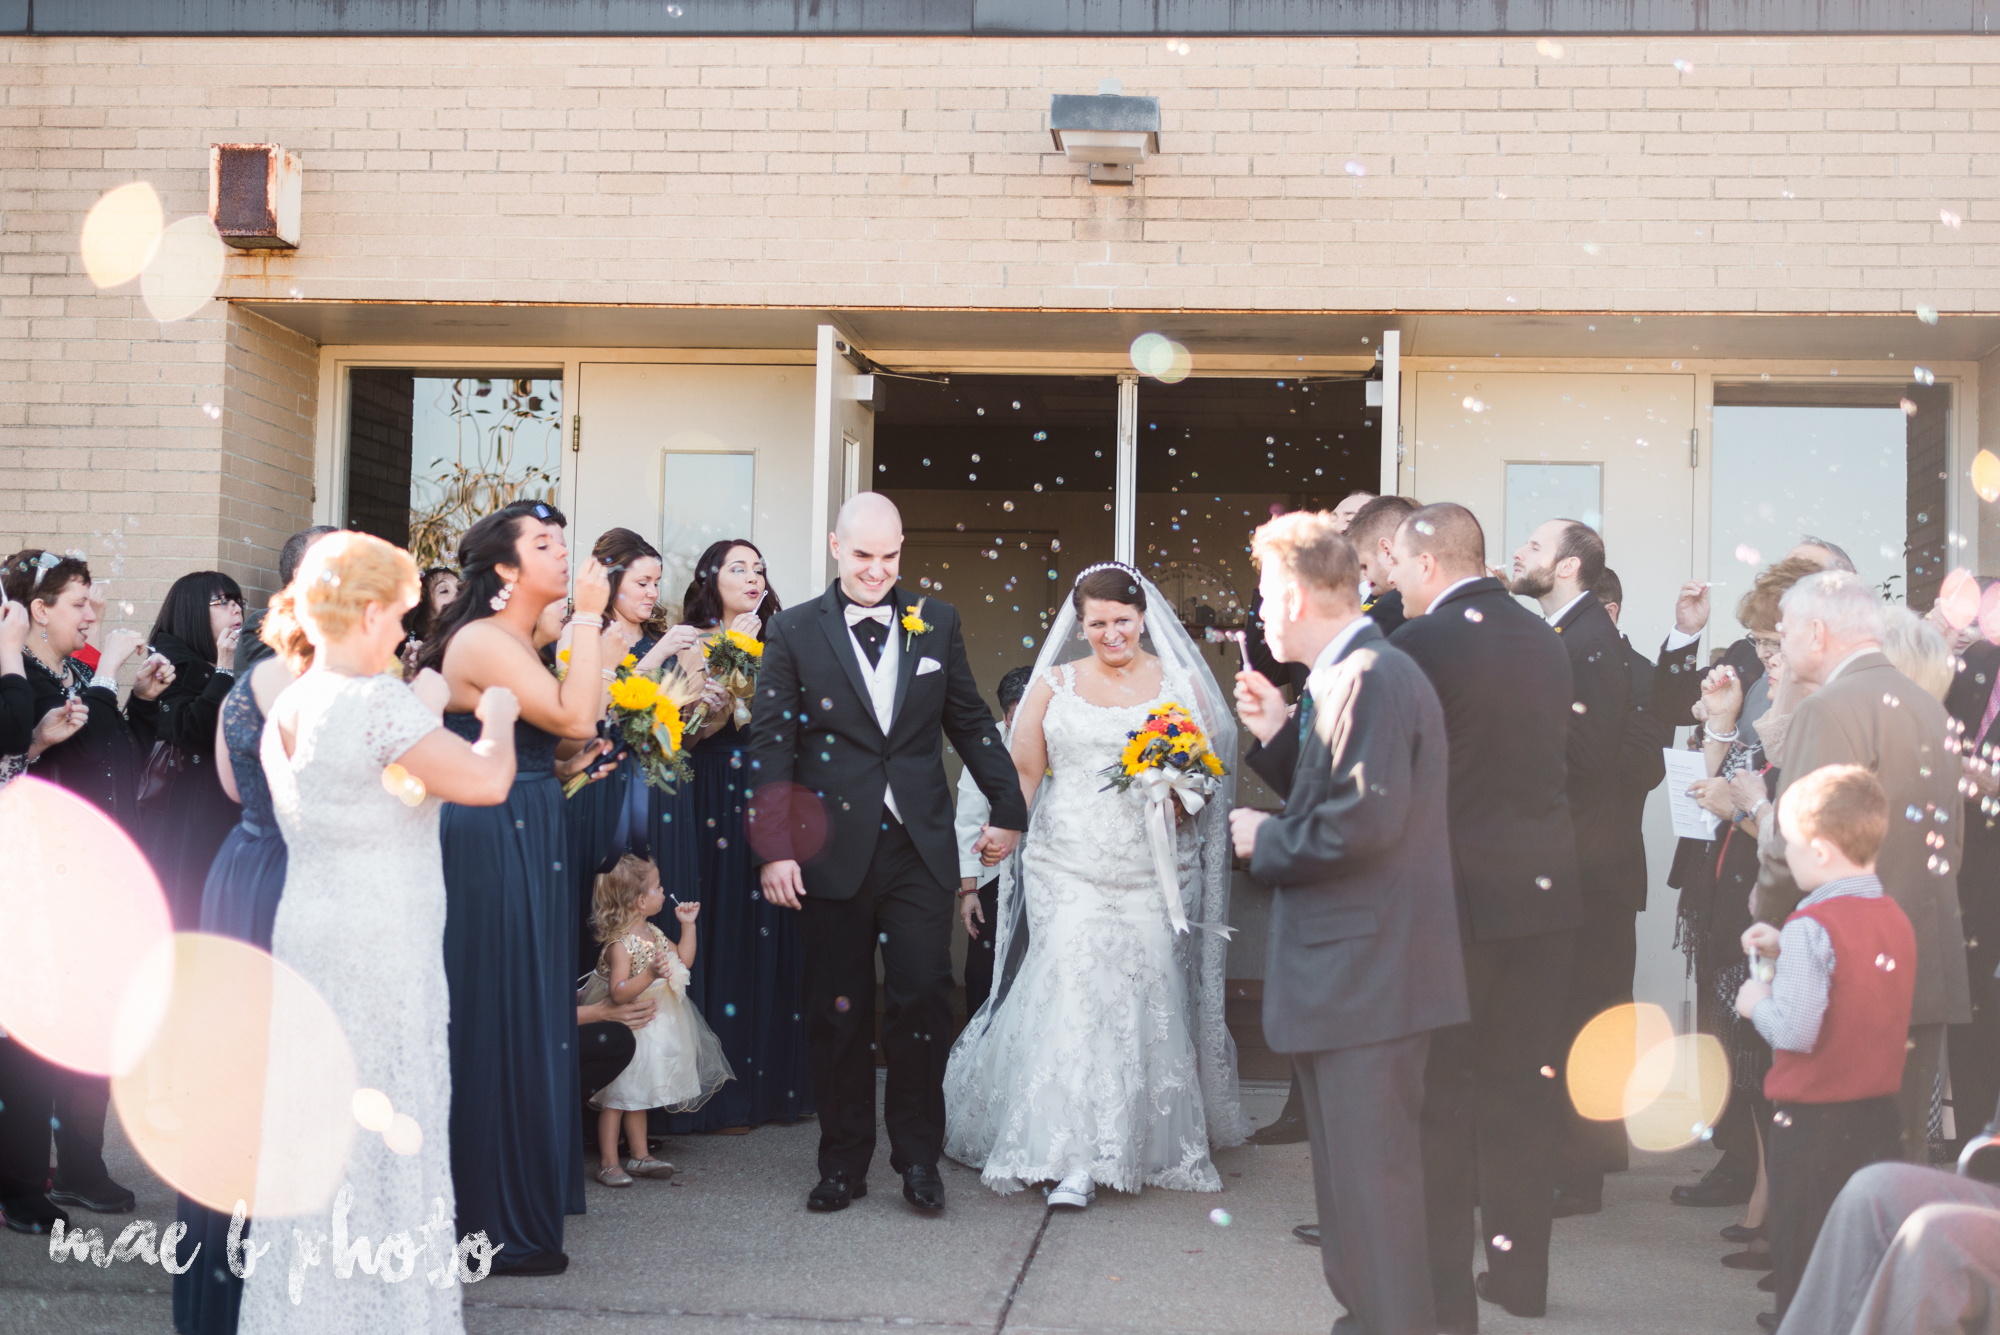 kaylynn & matt's fall zoo wedding at the cleveland metroparks zoo in cleveland ohio photographed by mae b photo-12.jpg